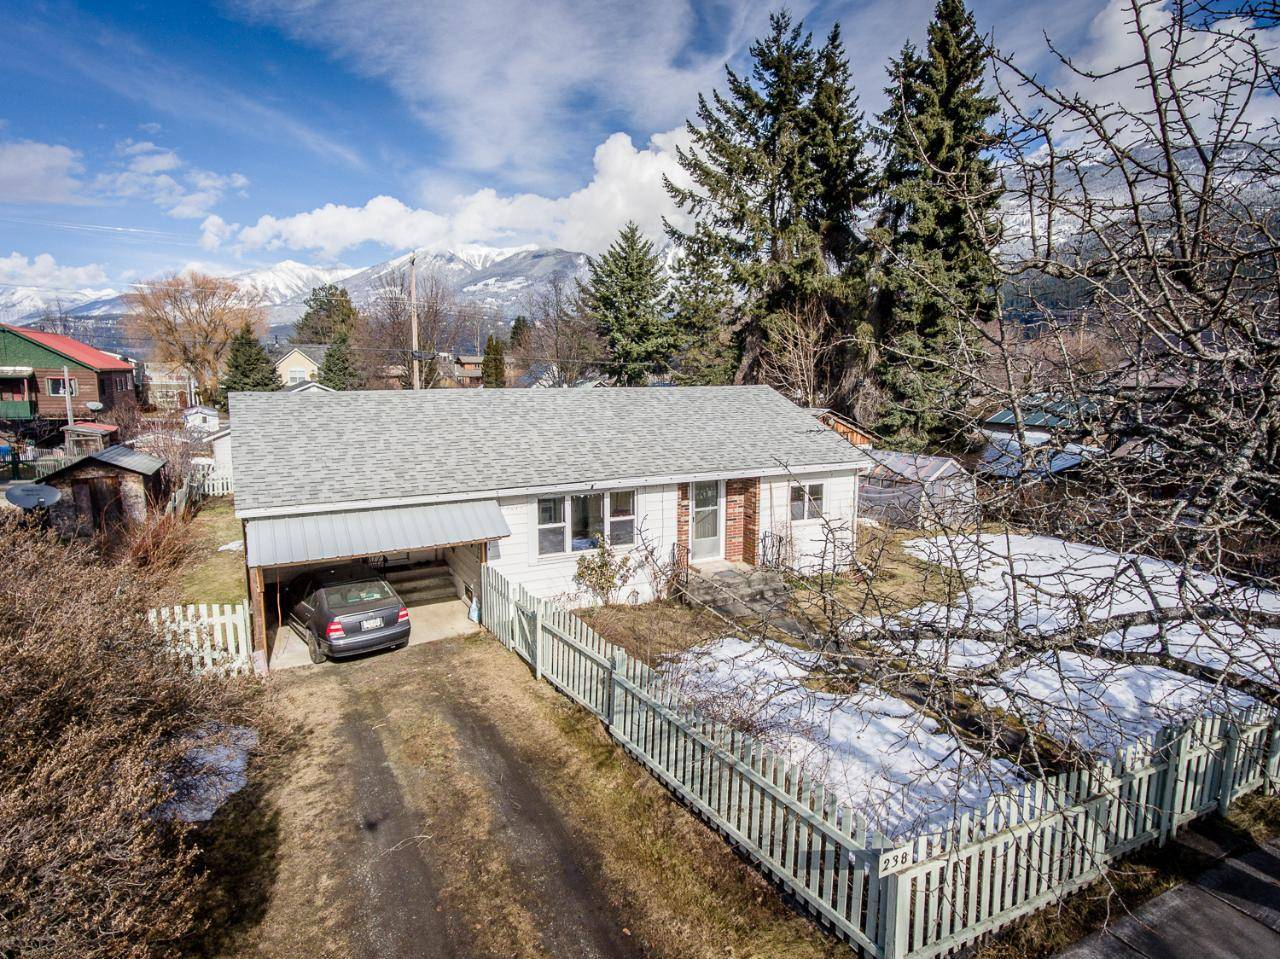 House for sale at 238 B Avenue  Kaslo British Columbia - MLS: 2450958